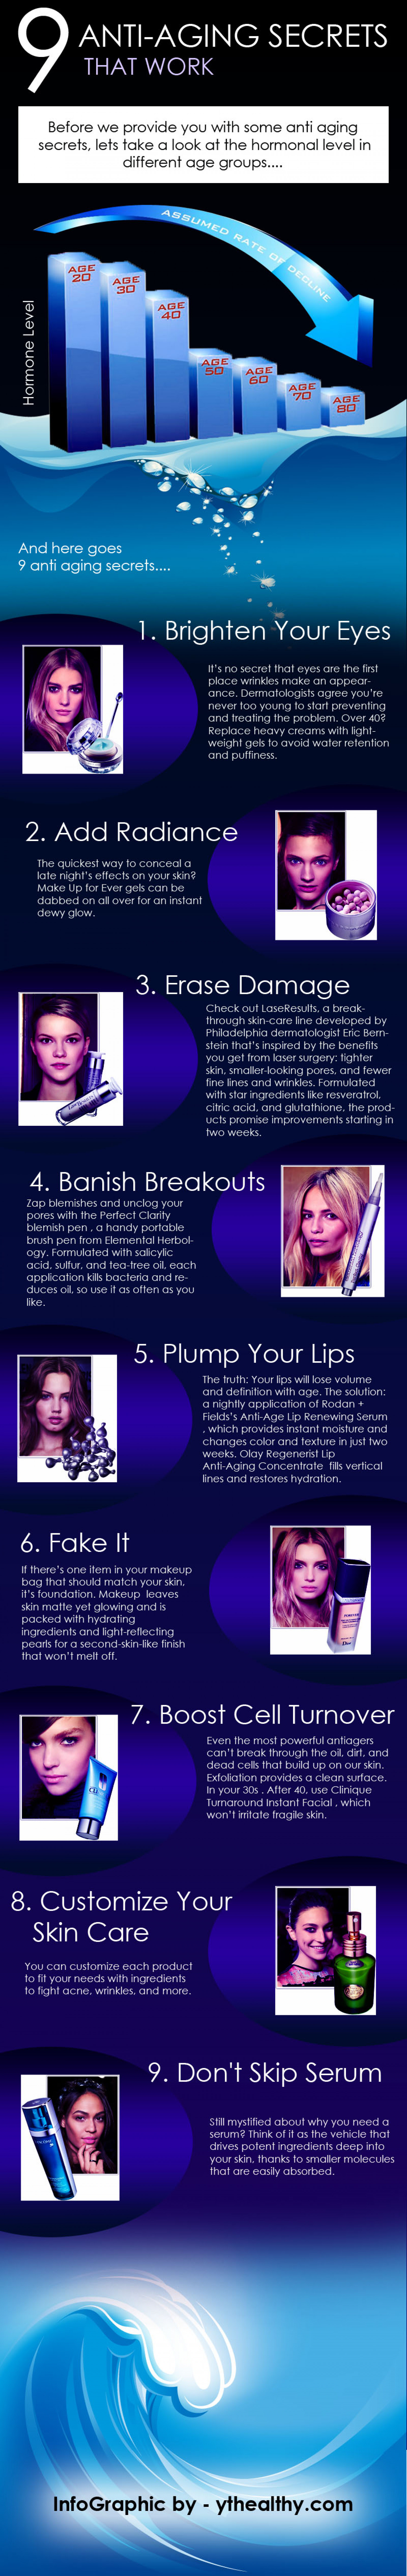 9 Anti Aging Secrets that work Infographic